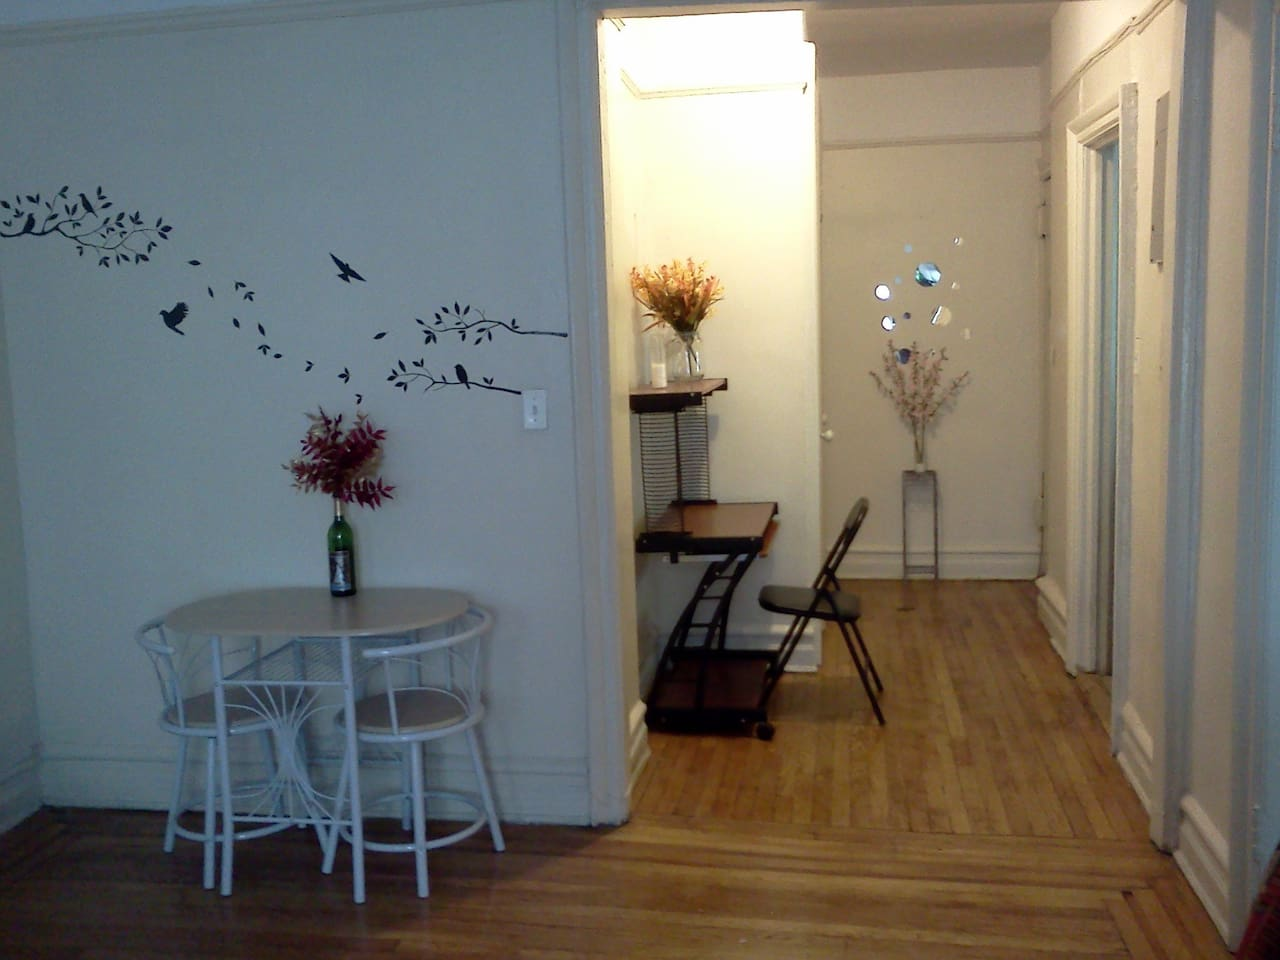 Entryway and part of living room